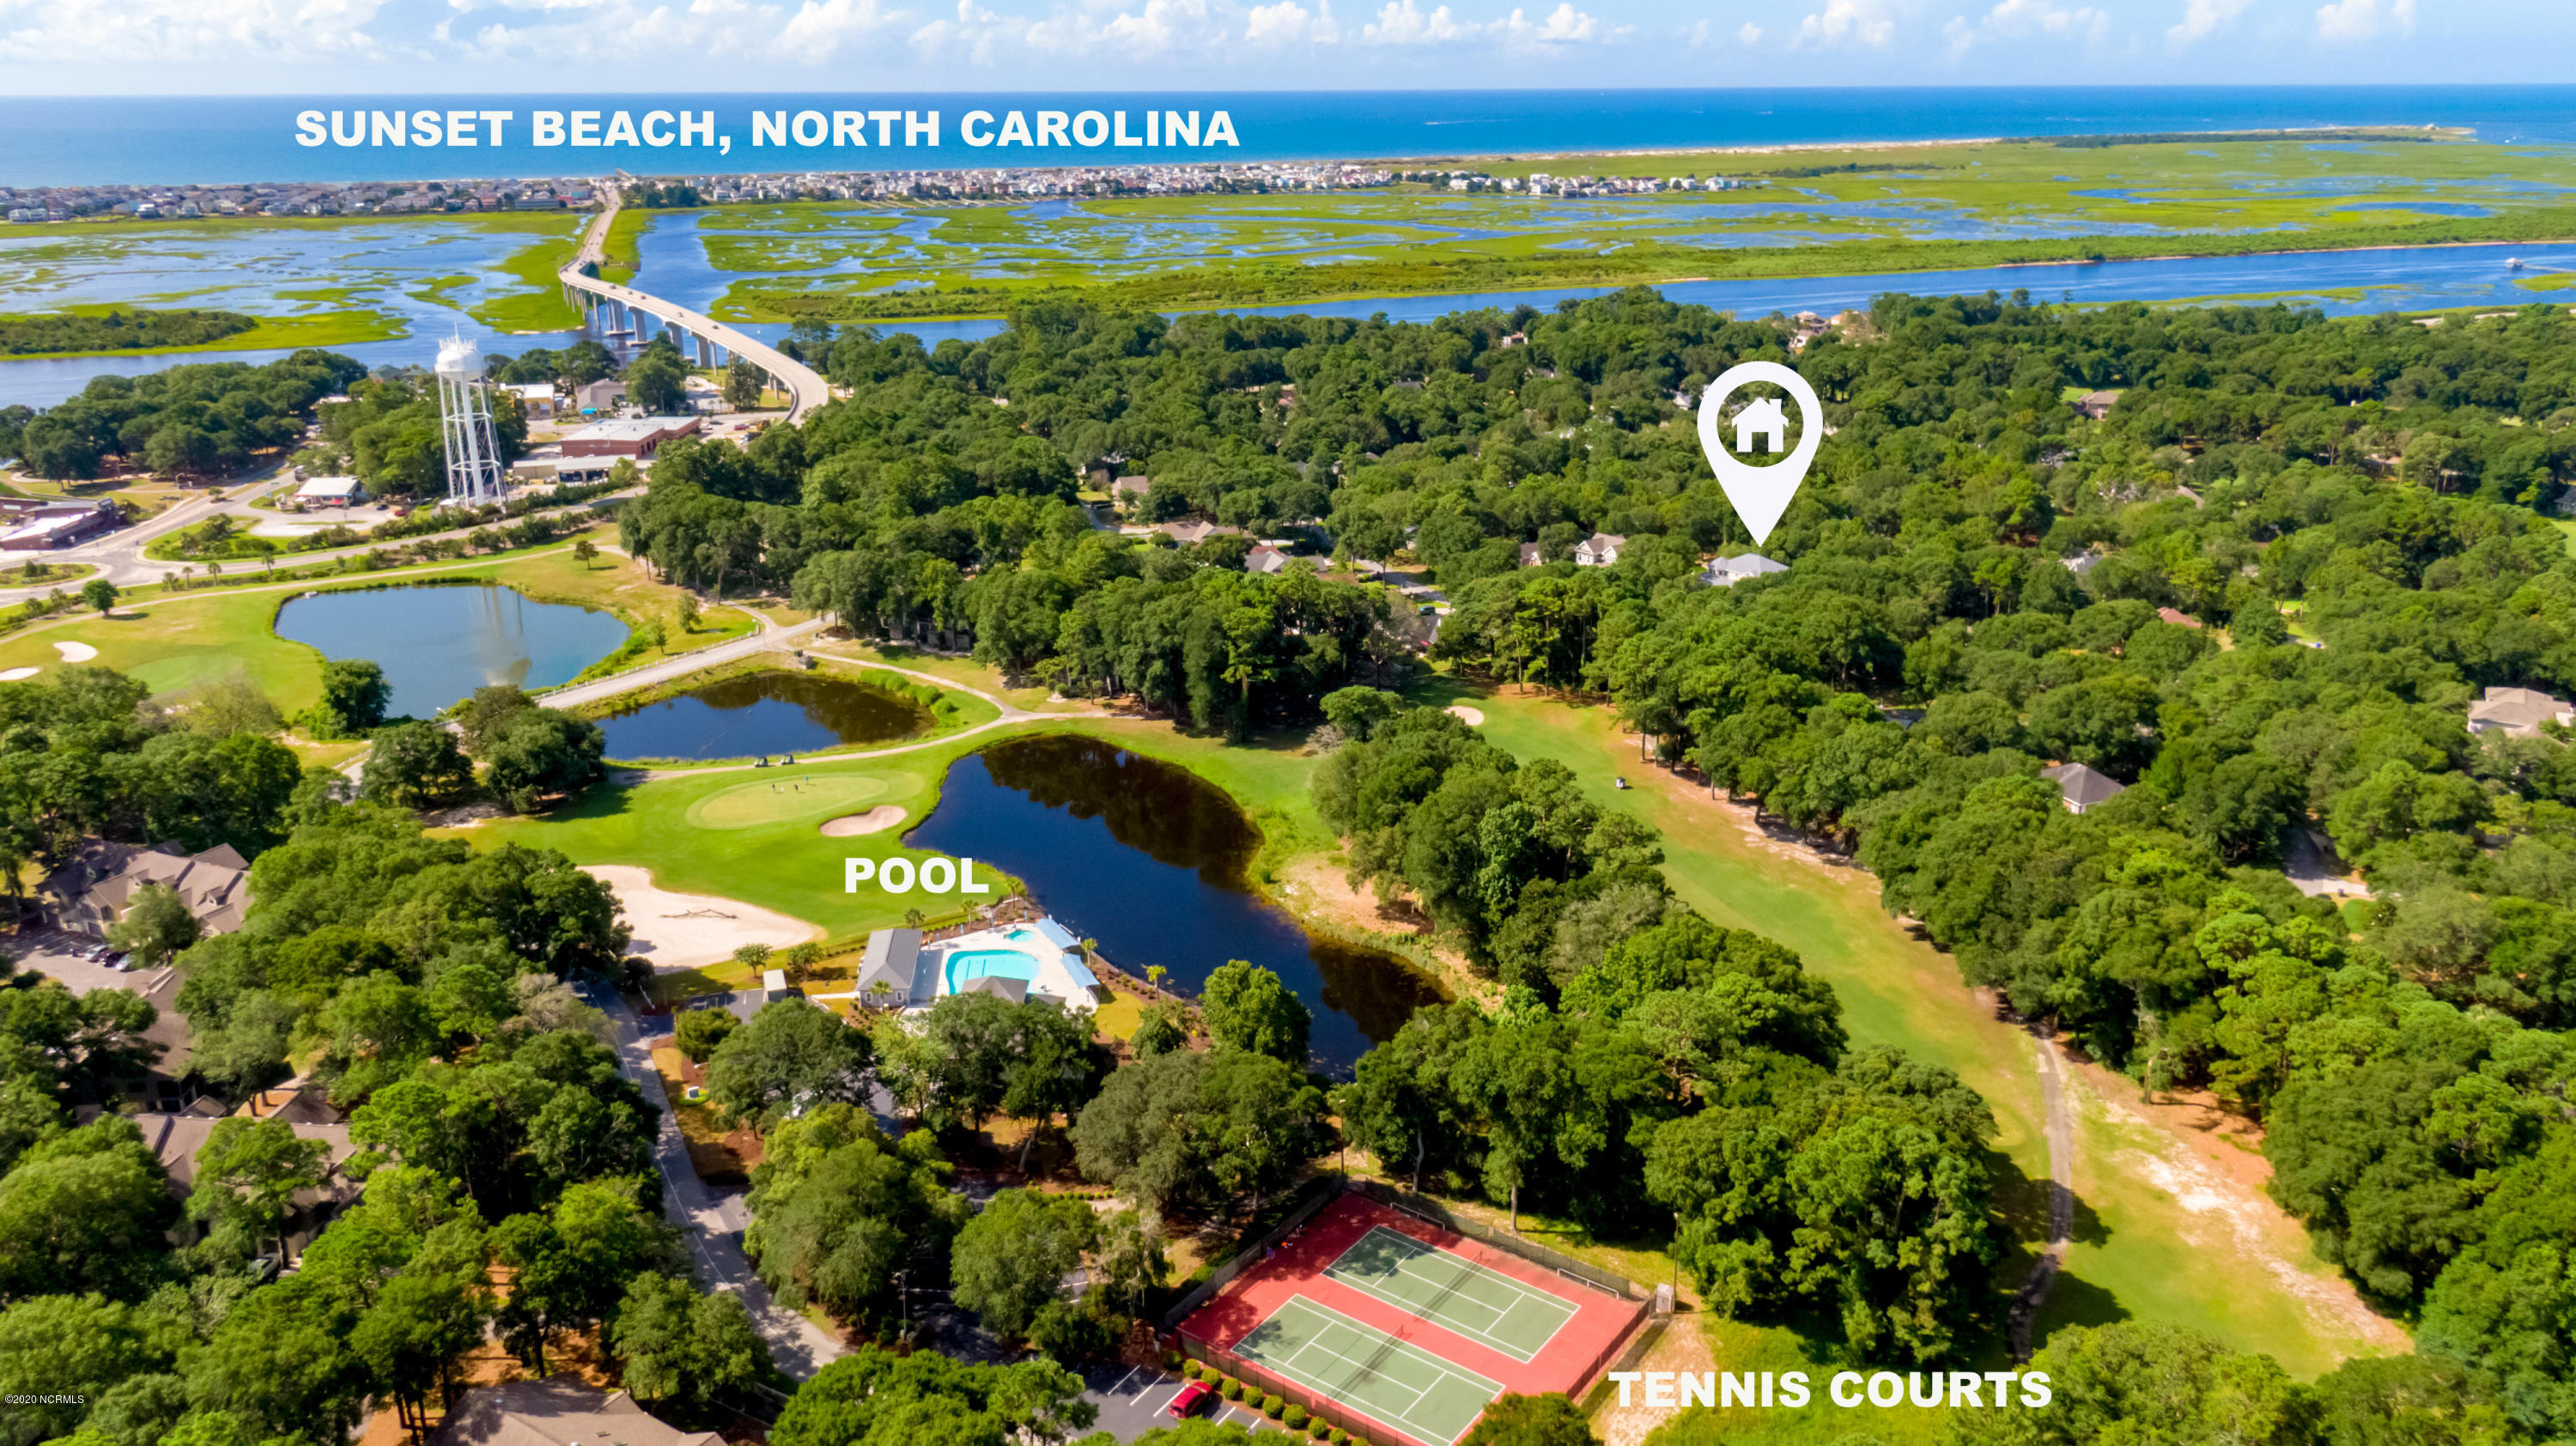 279 Heather Drive, Sunset Beach, North Carolina 28468, 4 Bedrooms Bedrooms, 11 Rooms Rooms,4 BathroomsBathrooms,Single family residence,For sale,Heather,100229255